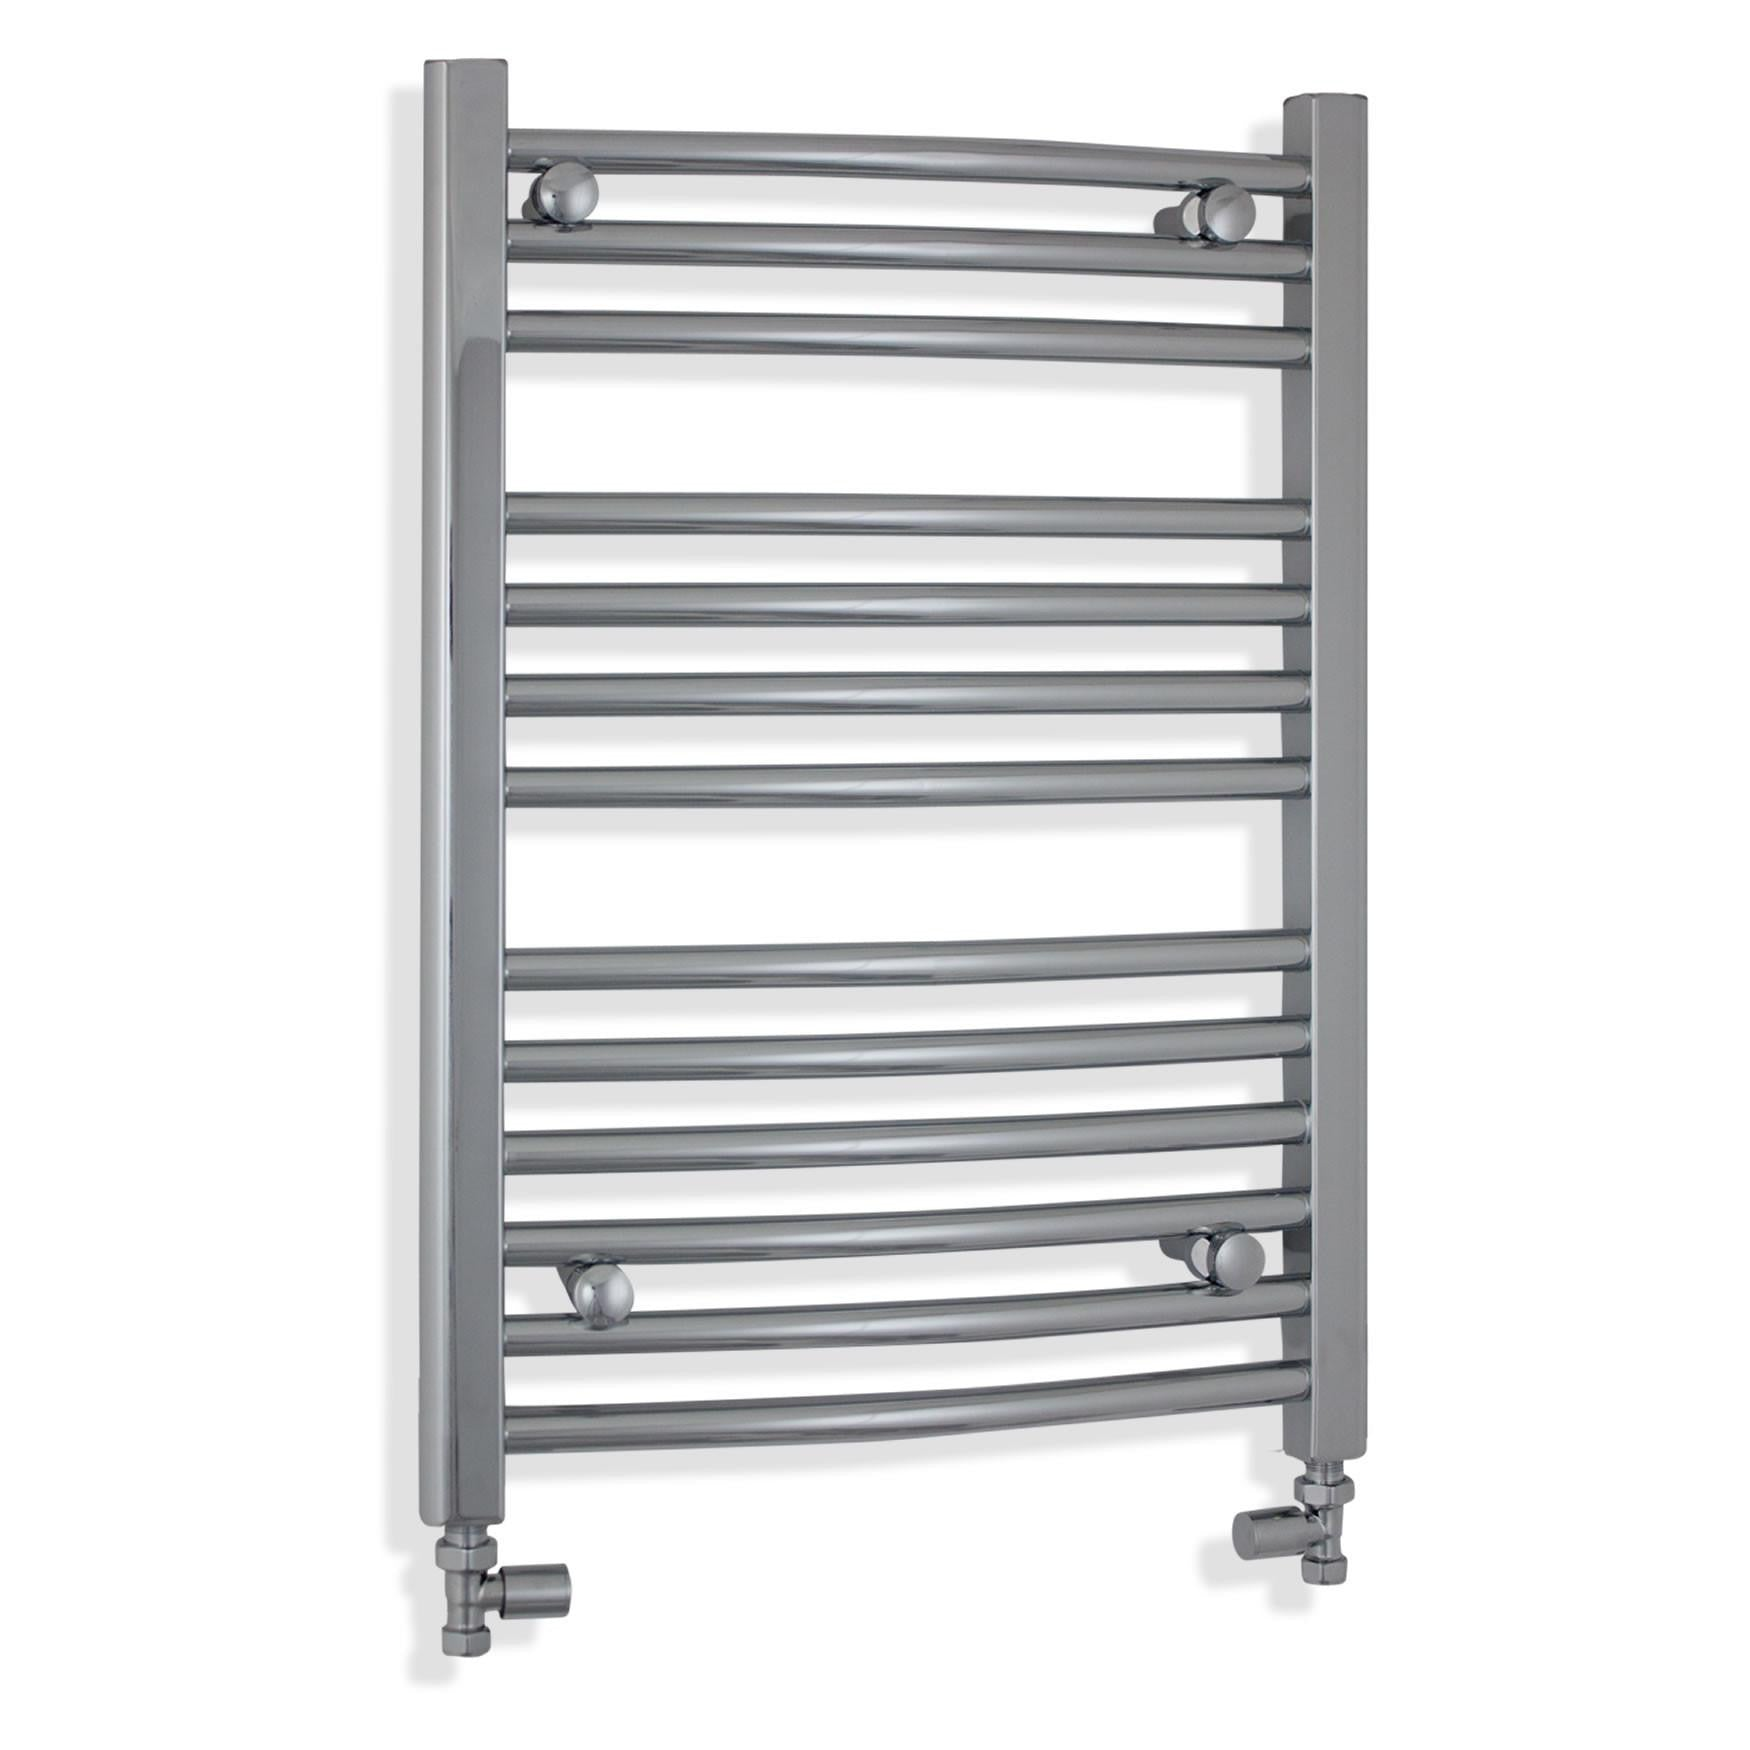 500mm Wide 700mm High Chrome Towel Rail Radiator With Straight Valve